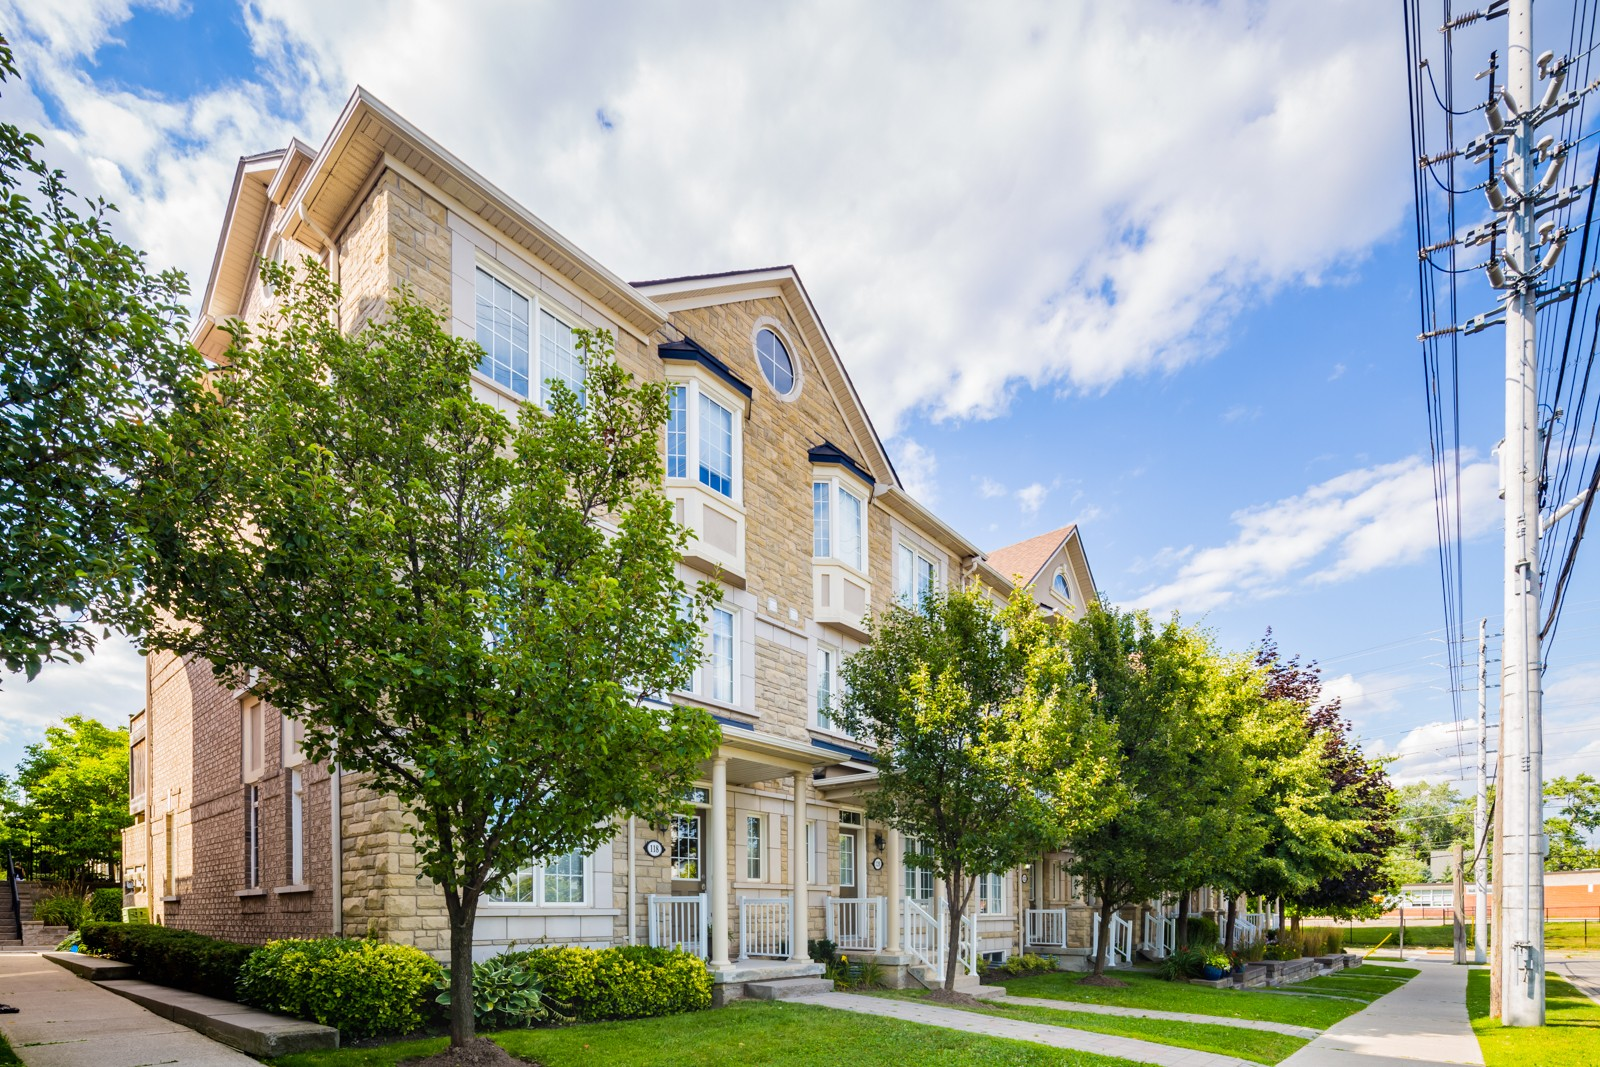 36 Rosewood Avenue Townhouses at 100 Park St E, Mississauga 1